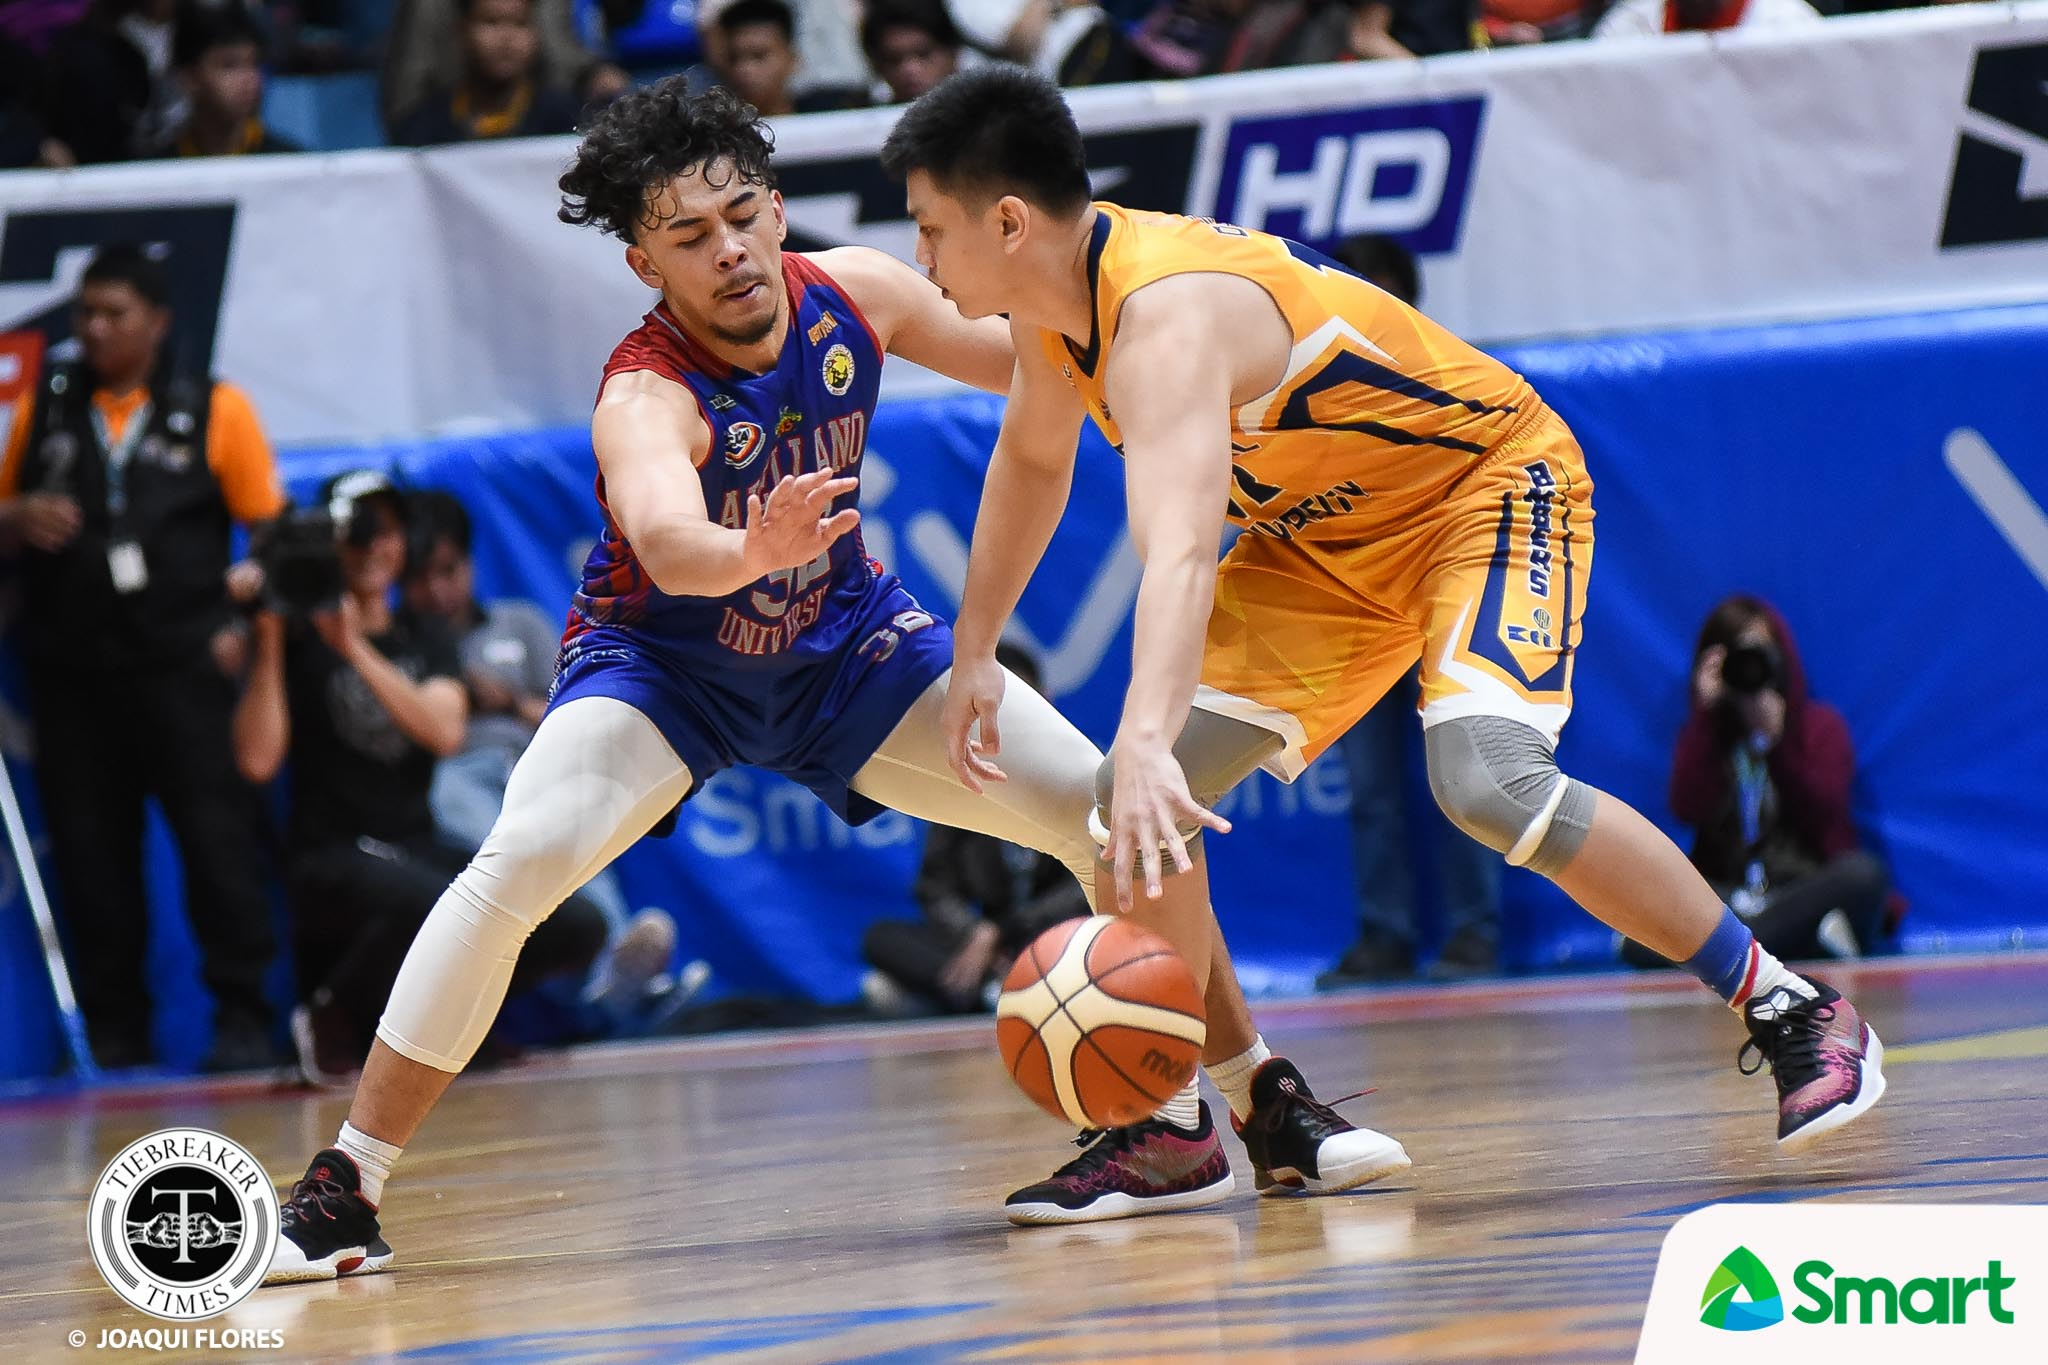 Tiebreaker Times Maui Sera Josef notches career-high as Arellano evens slate AU Basketball JRU NCAA News  Vergel Meneses NCAA Season 94 Seniors Basketball NCAA Season 94 Michael Canete Maui Sera Josef Levi dela Cruz JRU Seniors Basketball Jerry Codinera Jed Mendoza Ian Alban Arellano Seniors Basketball